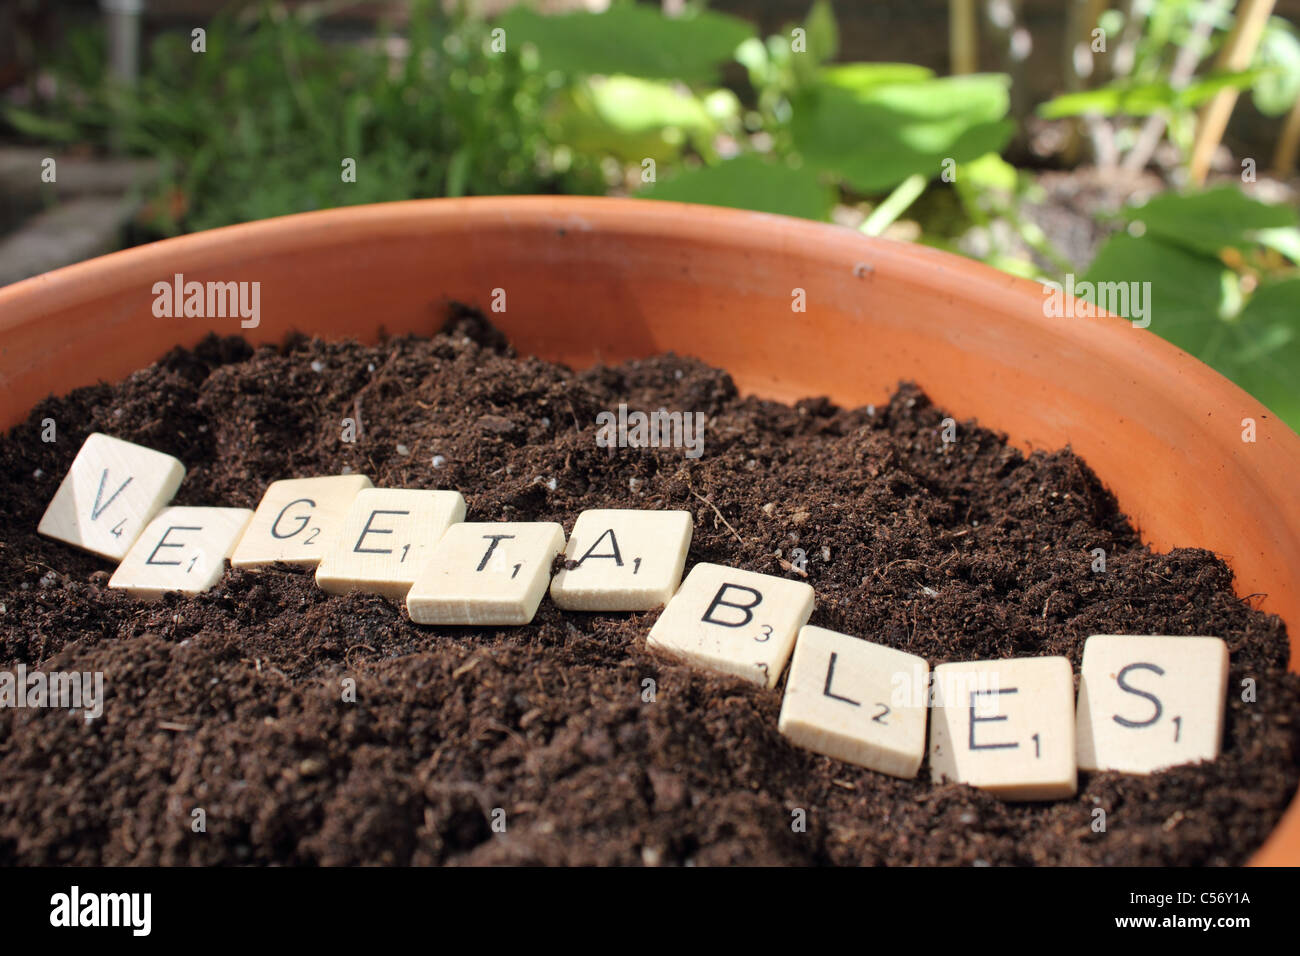 the word vegetables in a pot wit earth - Stock Image